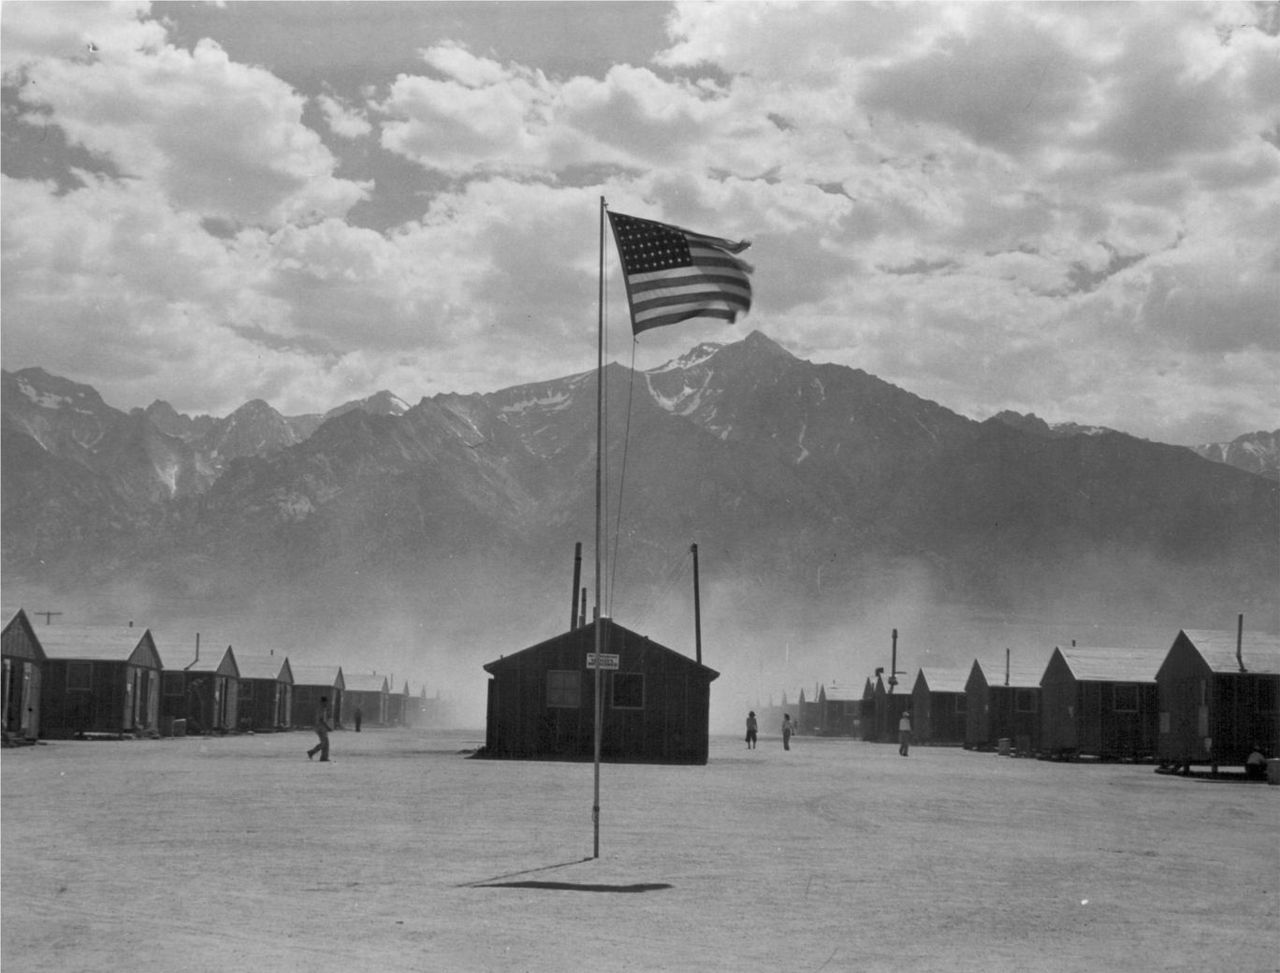 cene of barrack homes at this War Relocation Authority Center for evacuees of Japanese ancestry at Manzanar. A hot windstorm brings dust from the surrounding desert. Photographer Dorothea Lange, 1942.